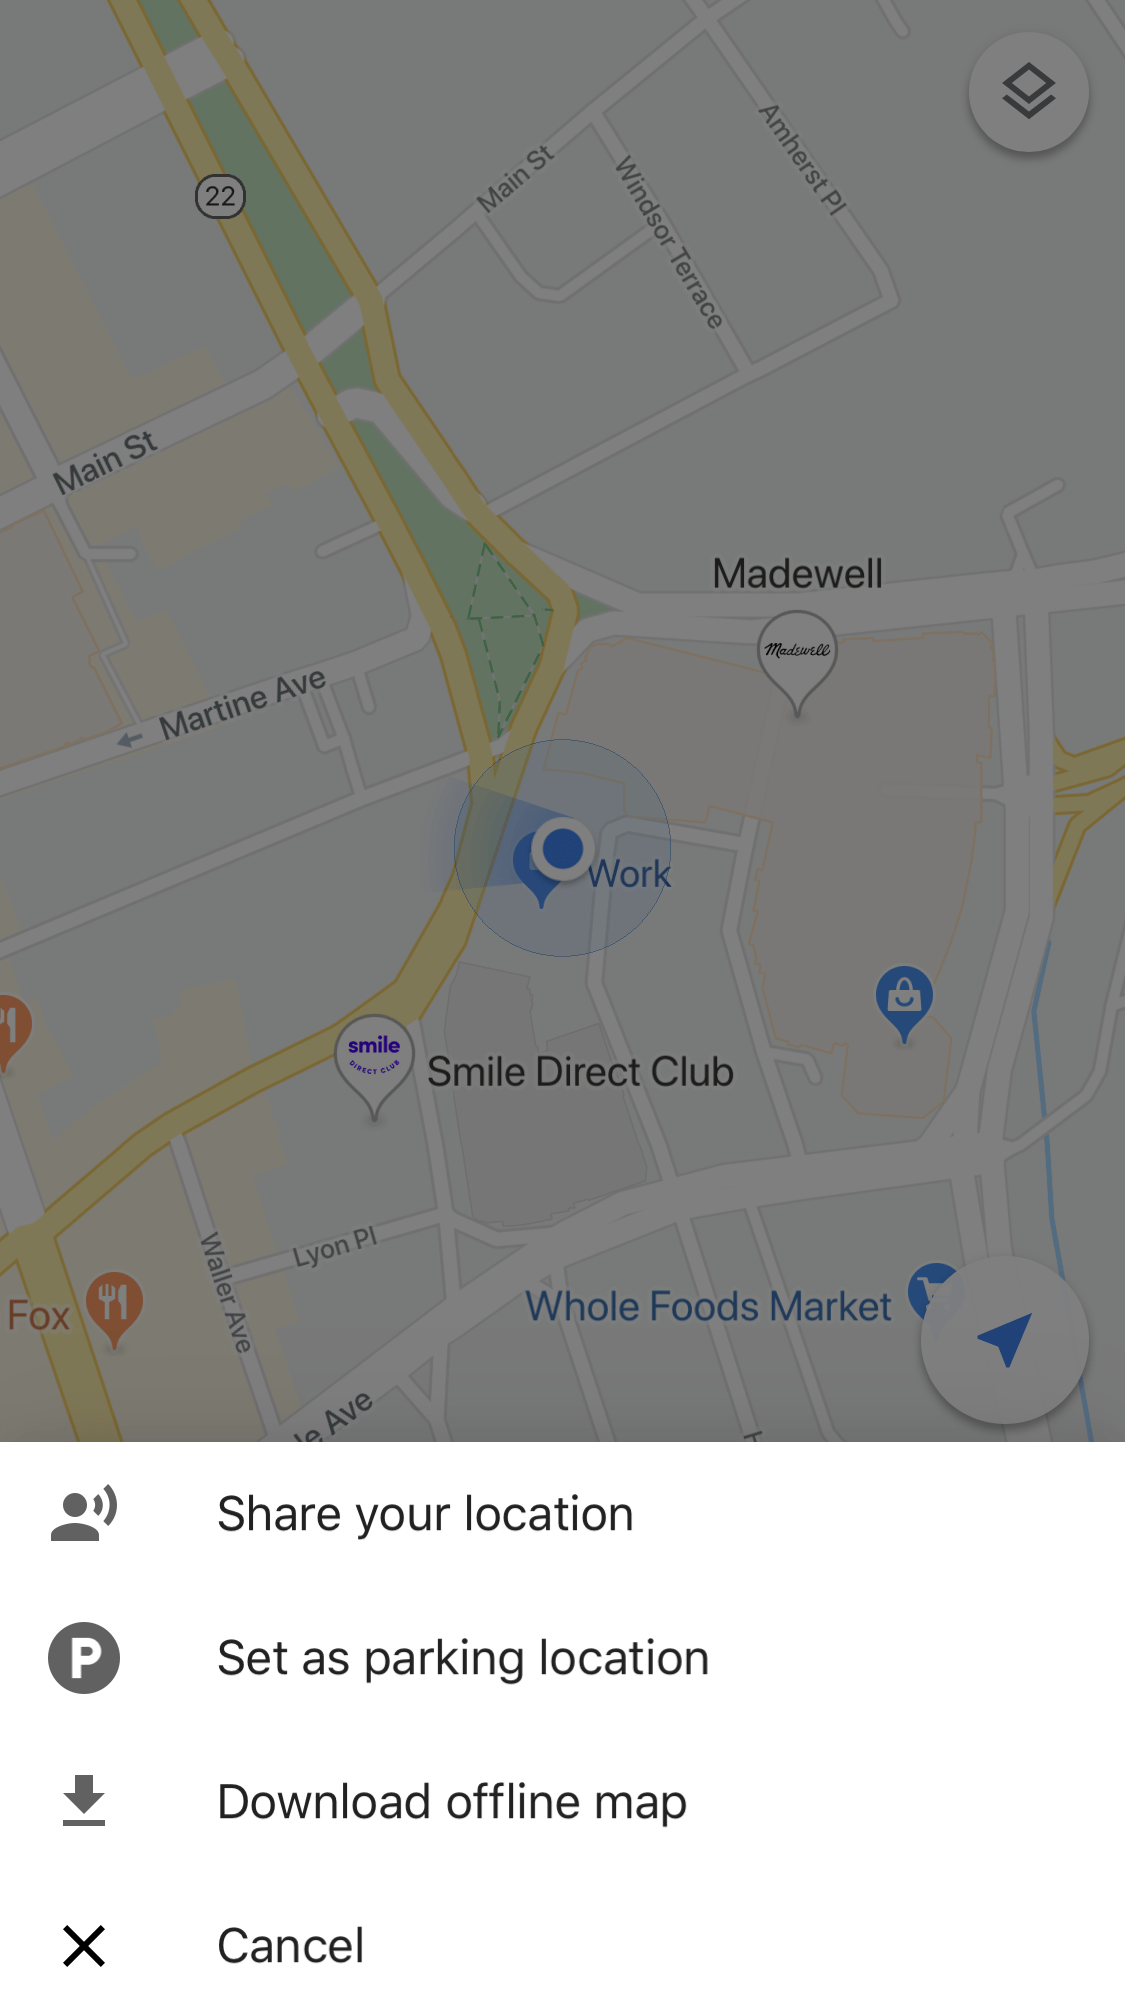 google maps share your location